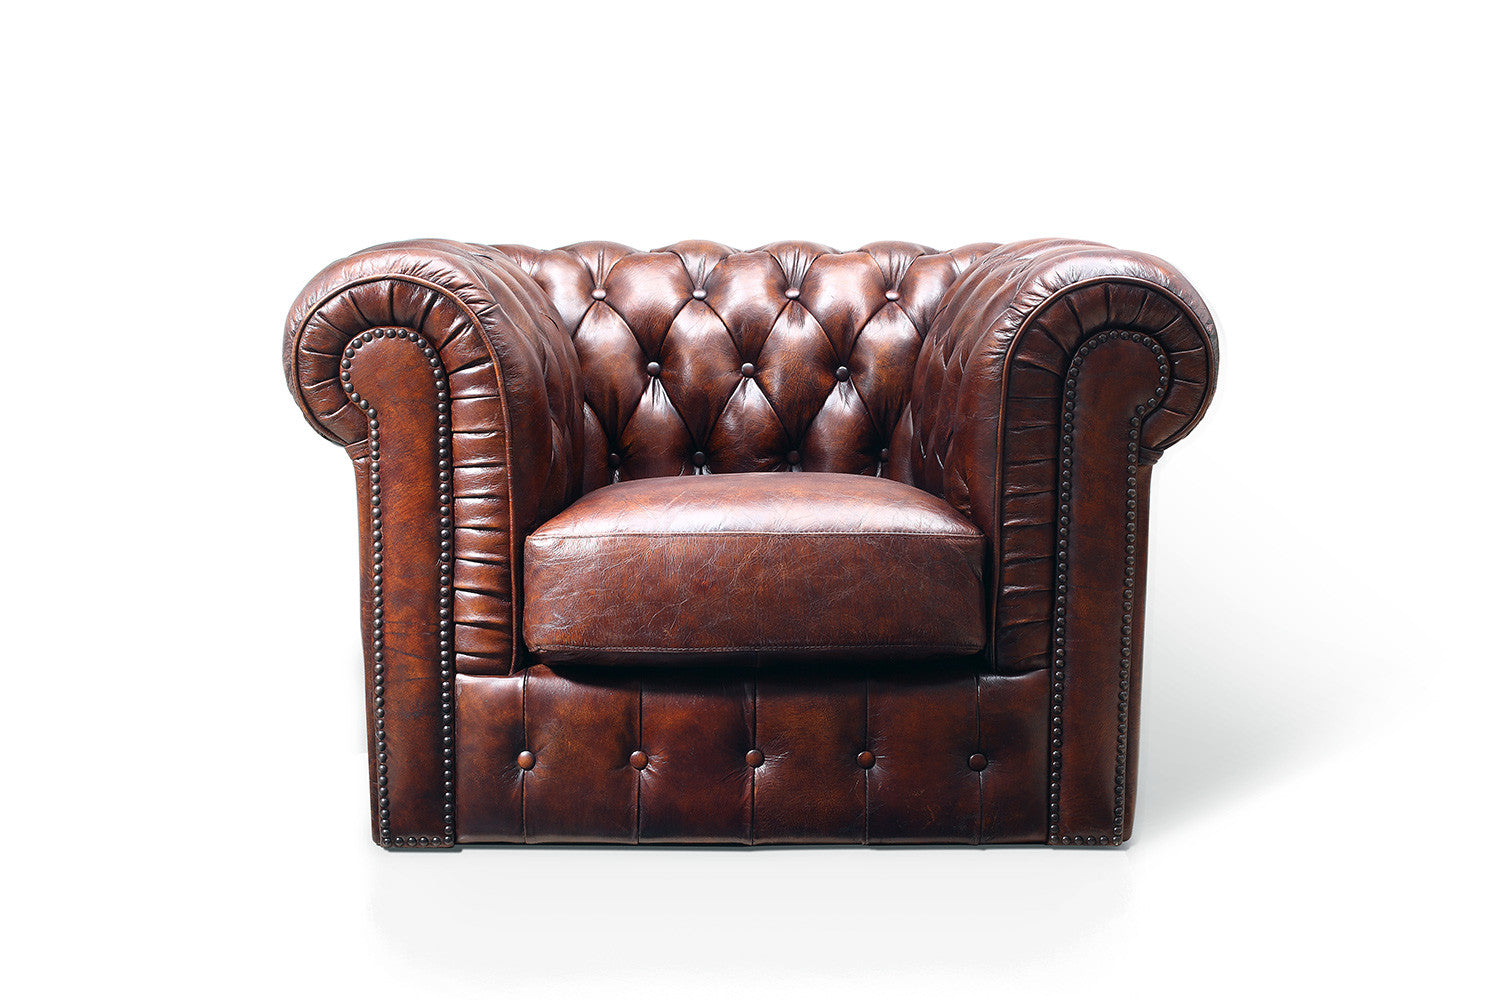 Fauteuil Chesterfield Original Rose Moore - Fauteuil chesterfield cuir